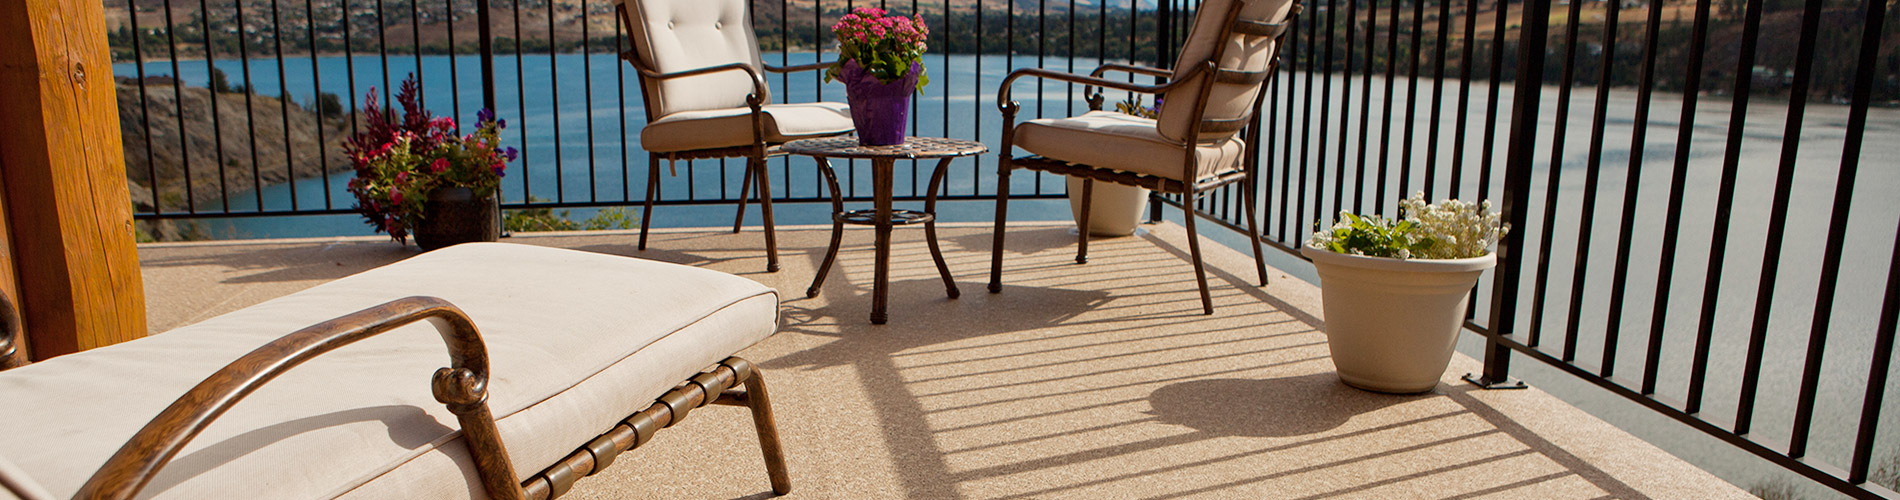 Where Vinyl Decking Meets Design